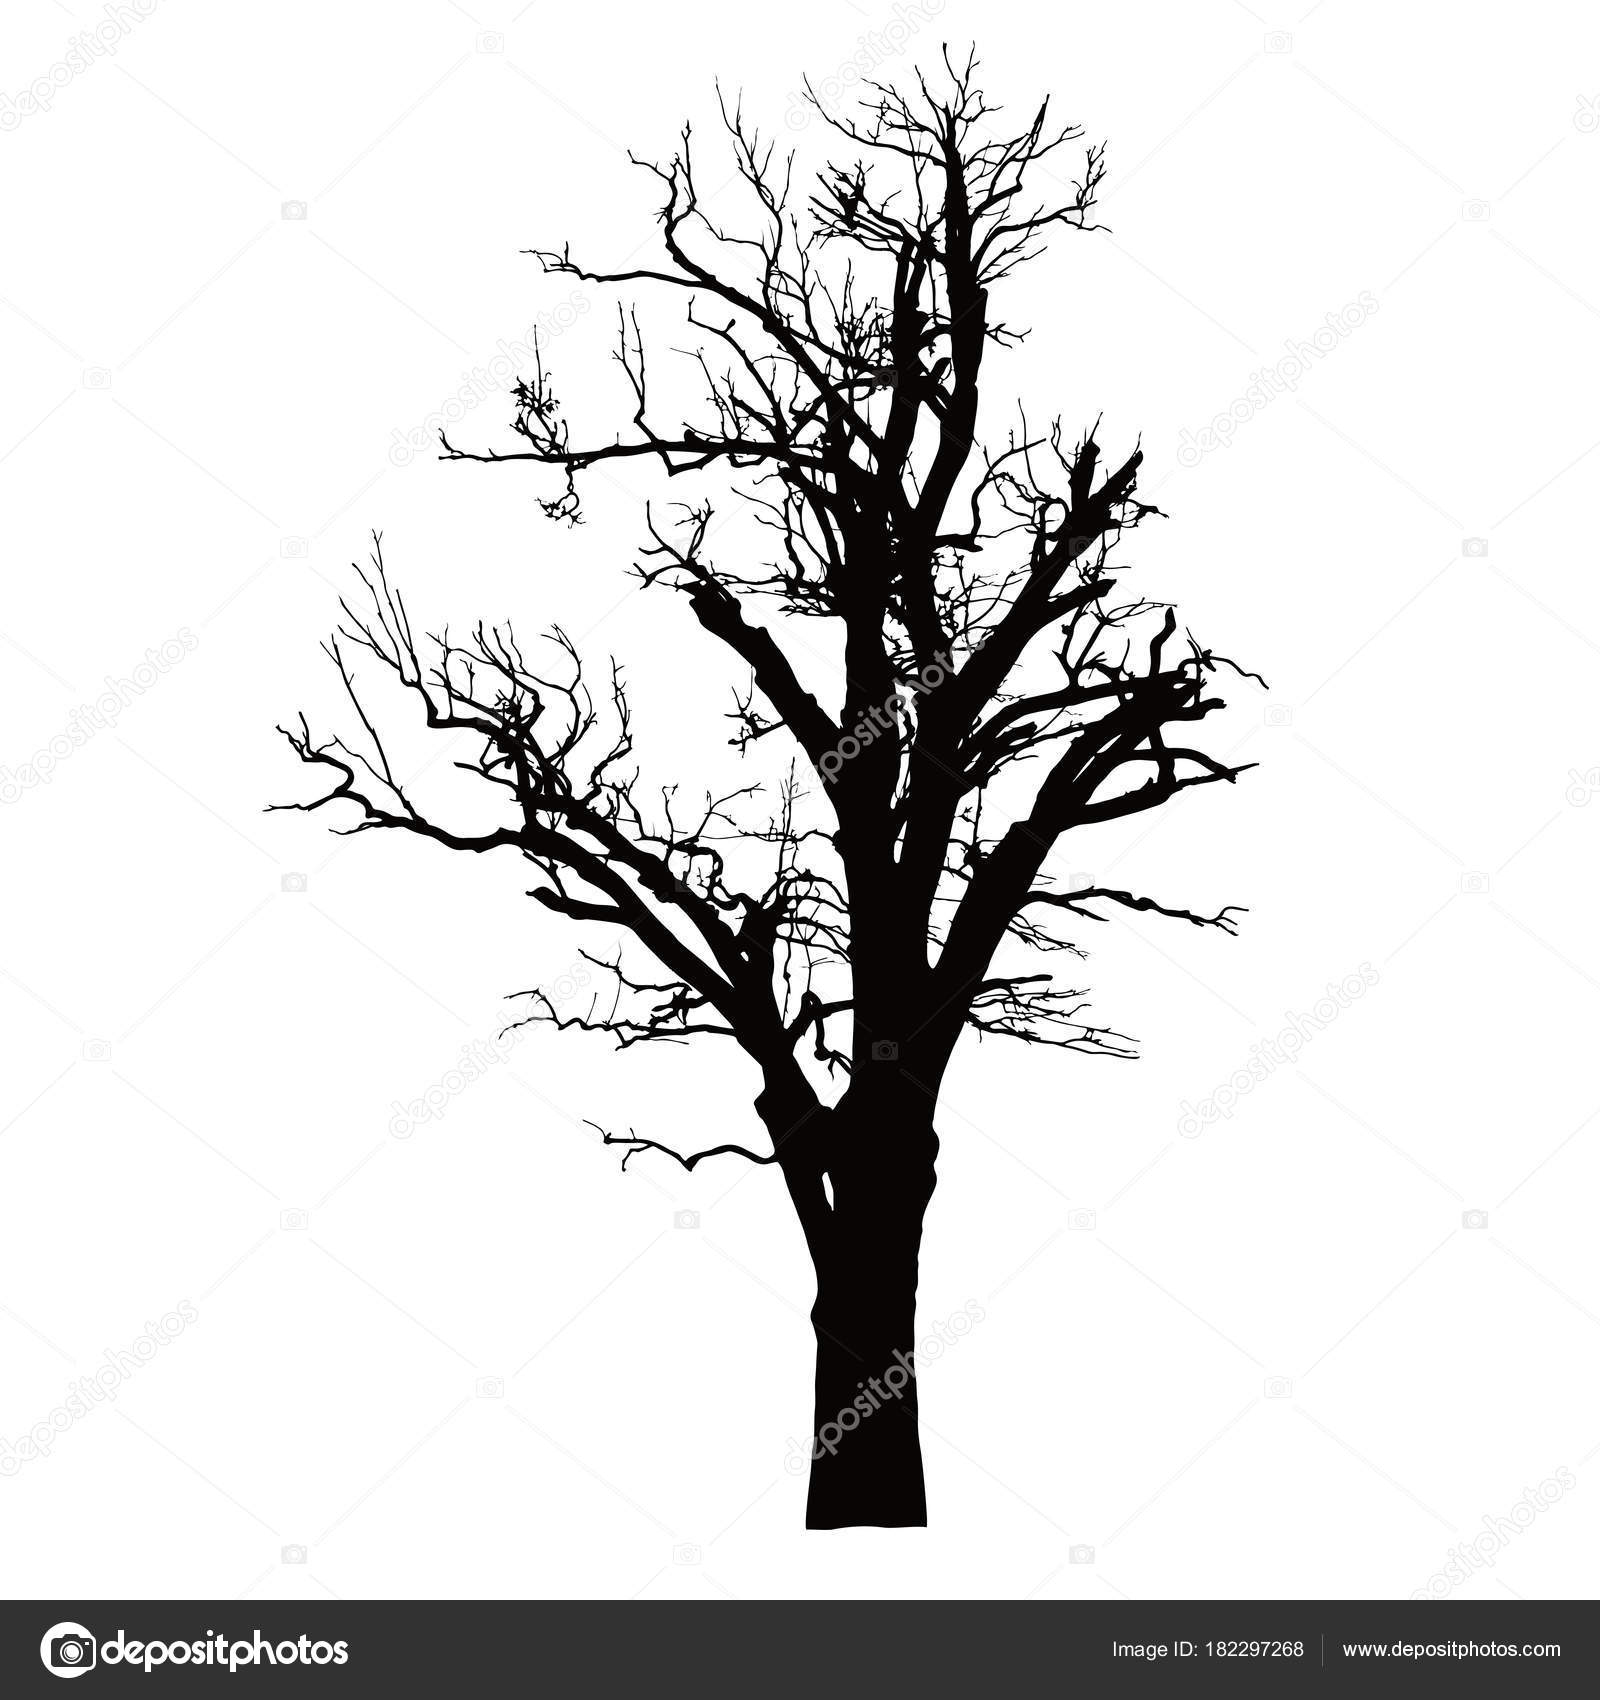 Realistic Silhouette Of A Dead Tree With Dry Branches Stock